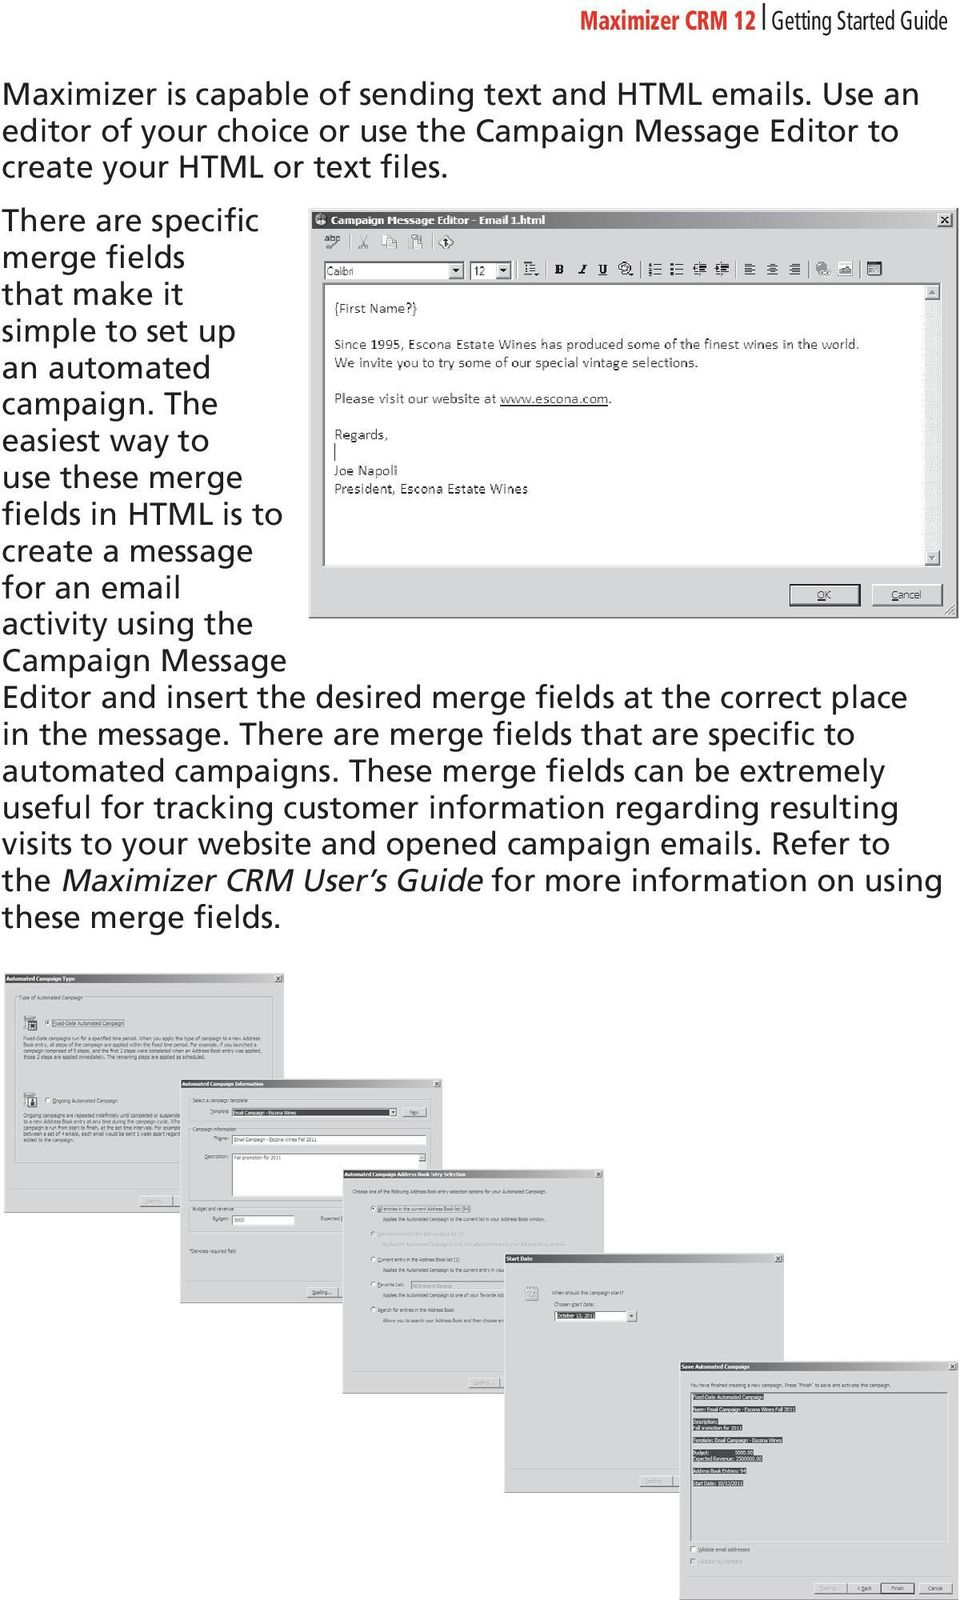 The easiest way to use these merge fields in HTML is to create a message for an email activity using the Campaign Message Editor and insert the desired merge fields at the correct place in the